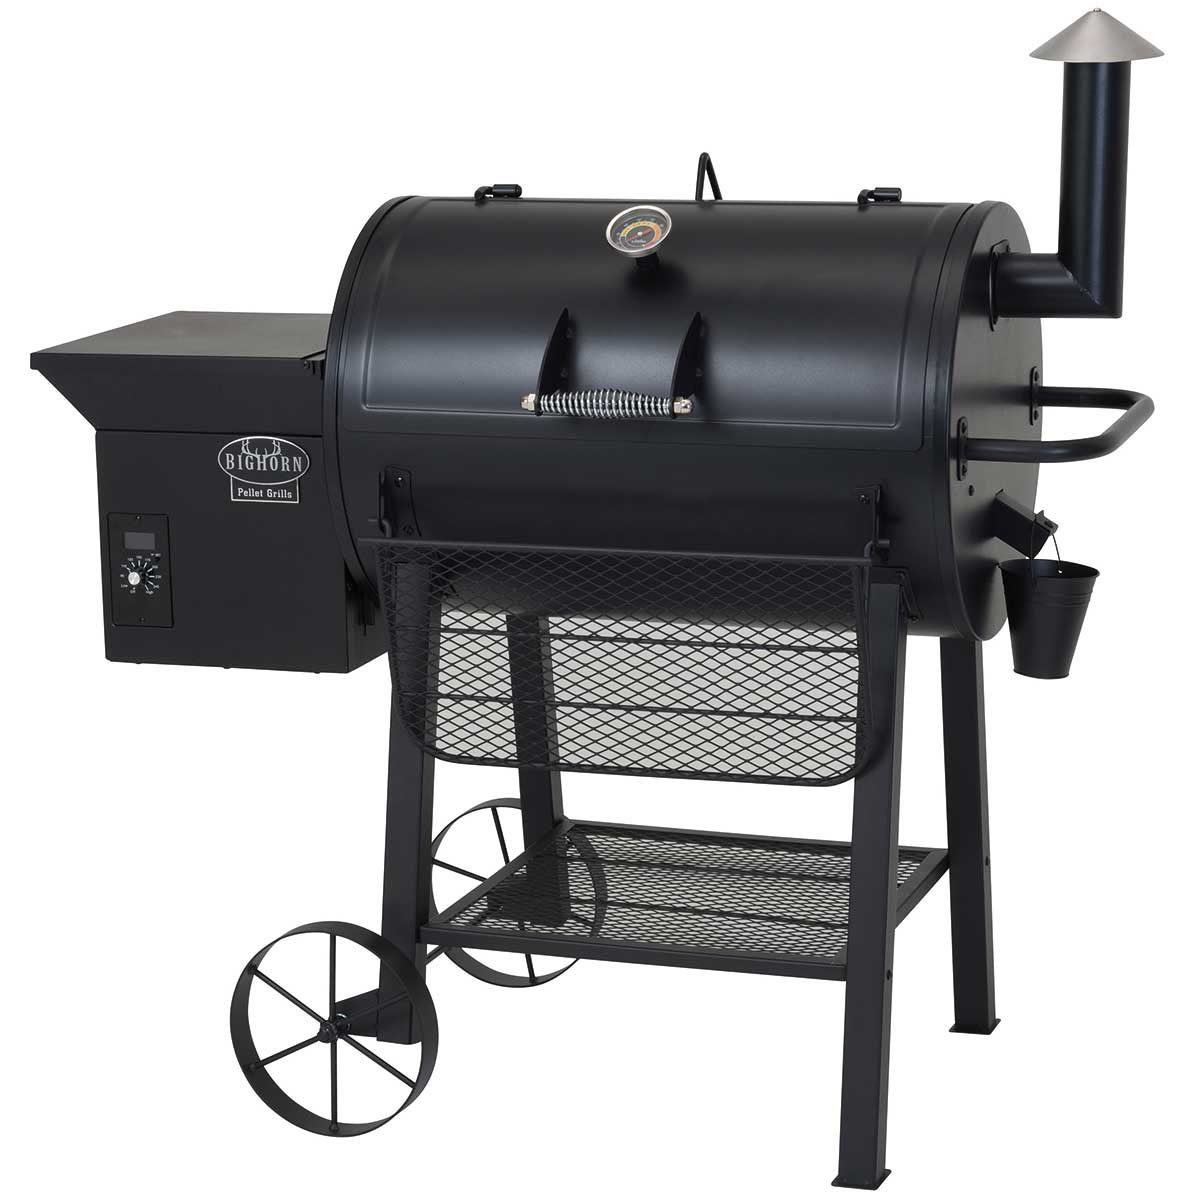 Big Horn Pellet Grill Barbecue